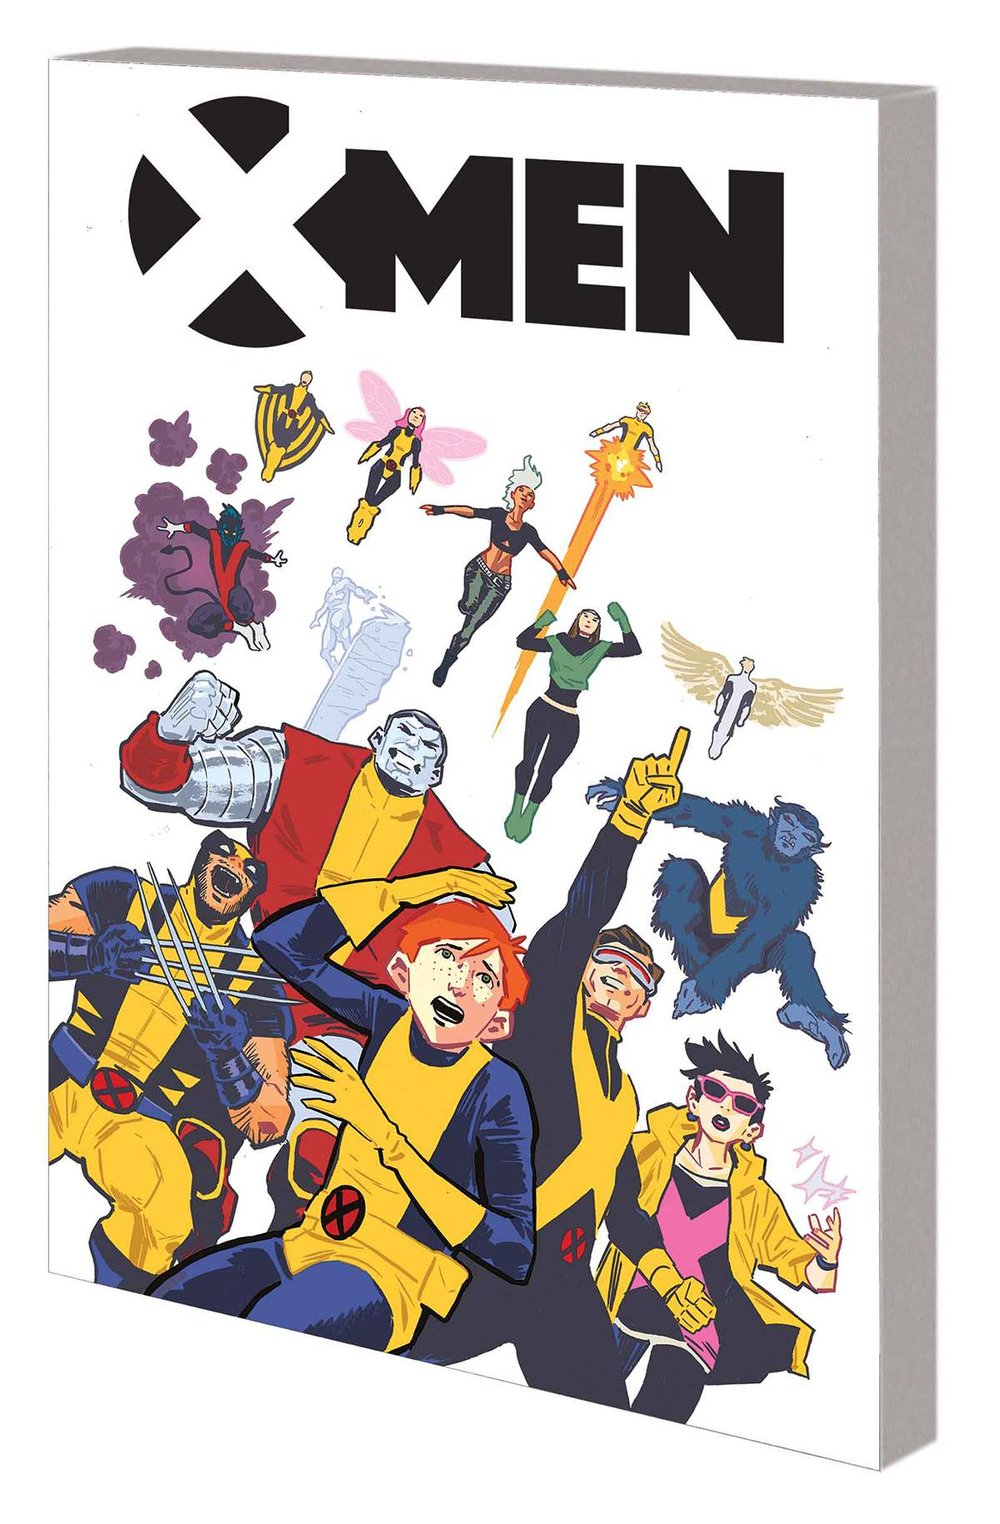 X-Men: Worst X-Men Ever TP - Lauren's PickBailey is a depressingly unremarkable teenage boy, until he's not. Surprise! When his parents tell him he's a mutant, his future seems limitless. Finally it's his time to be the special one! Then he finds out what his power is, and it all goes downhill again. It's a tale as old as Chris Claremont, weaving classic X-themes of social isolation and angst with a modern self-awareness to create something that feels brand new. Writer and Say Anything frontman Max Bemis embraces everything that's good and bad about the history of the team and offers a very satisfying explanation for years of convoluted time travel and retcons, all the while crafting a superhero story that stands on its own. The Worst X-man Ever is the best X-men story you'll find!